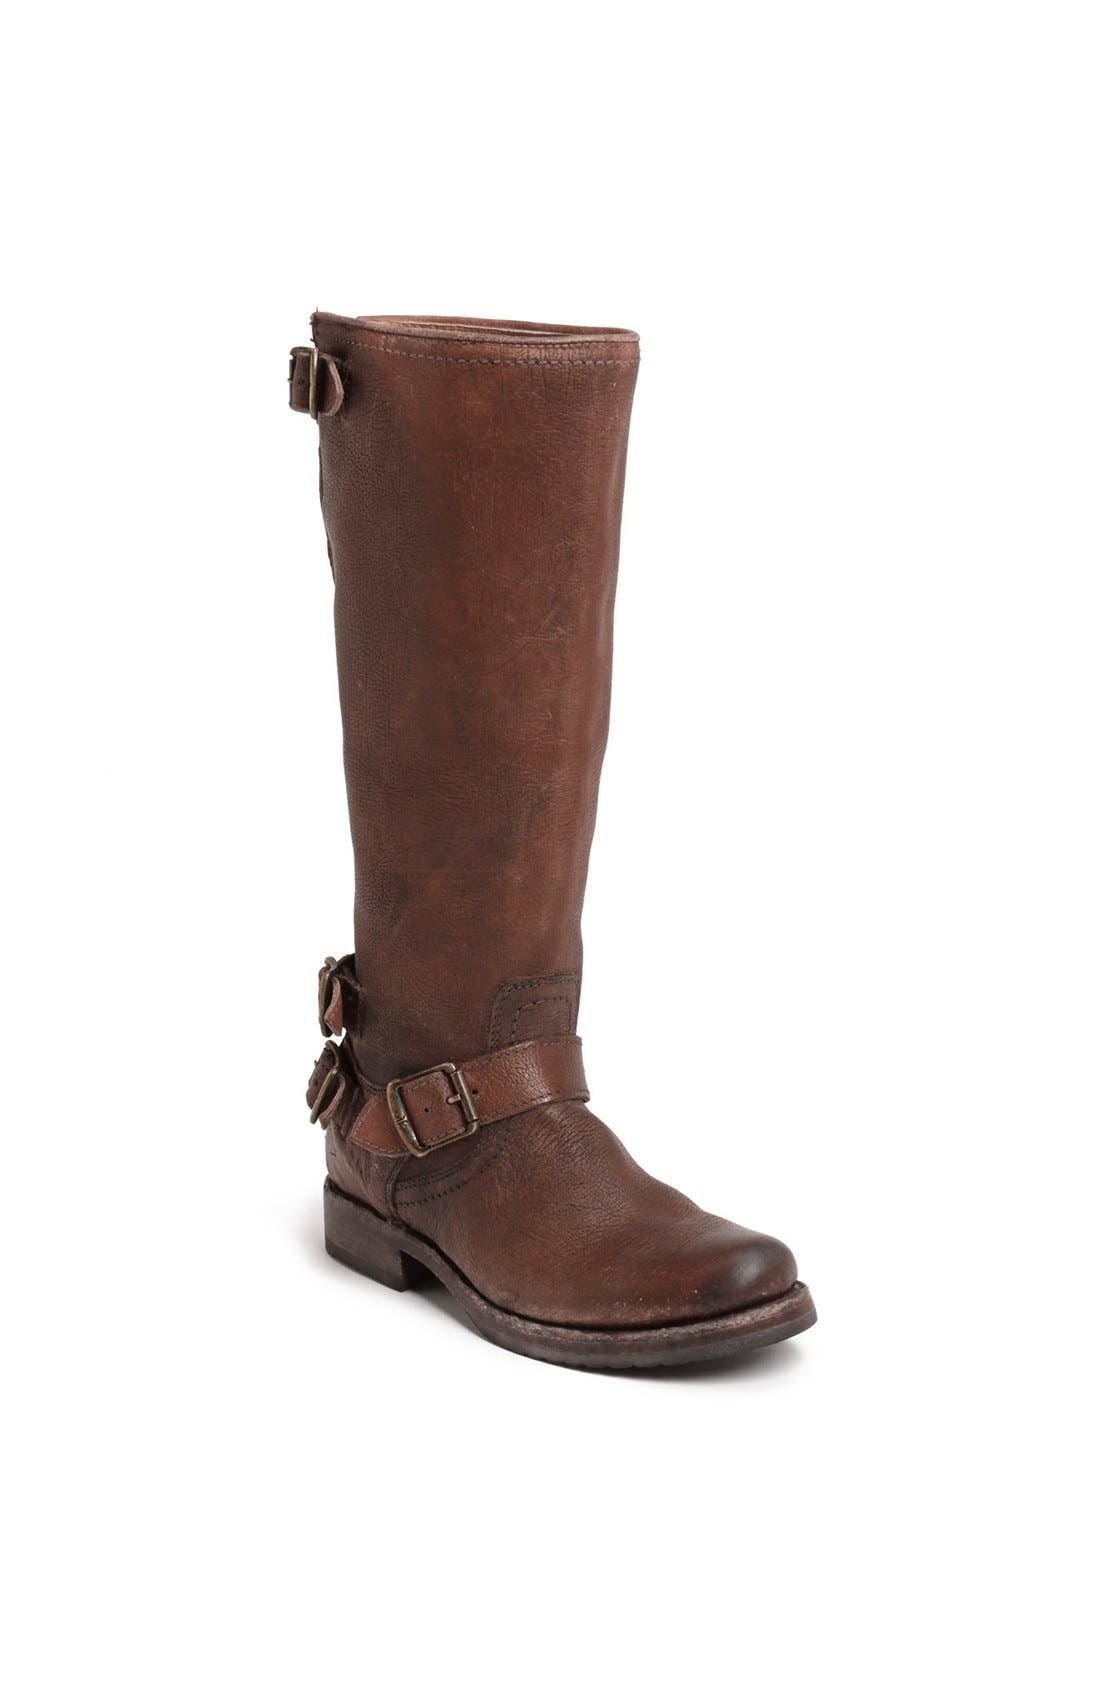 Alternate Image 1 Selected - Frye 'Veronica Back Zip' Boot